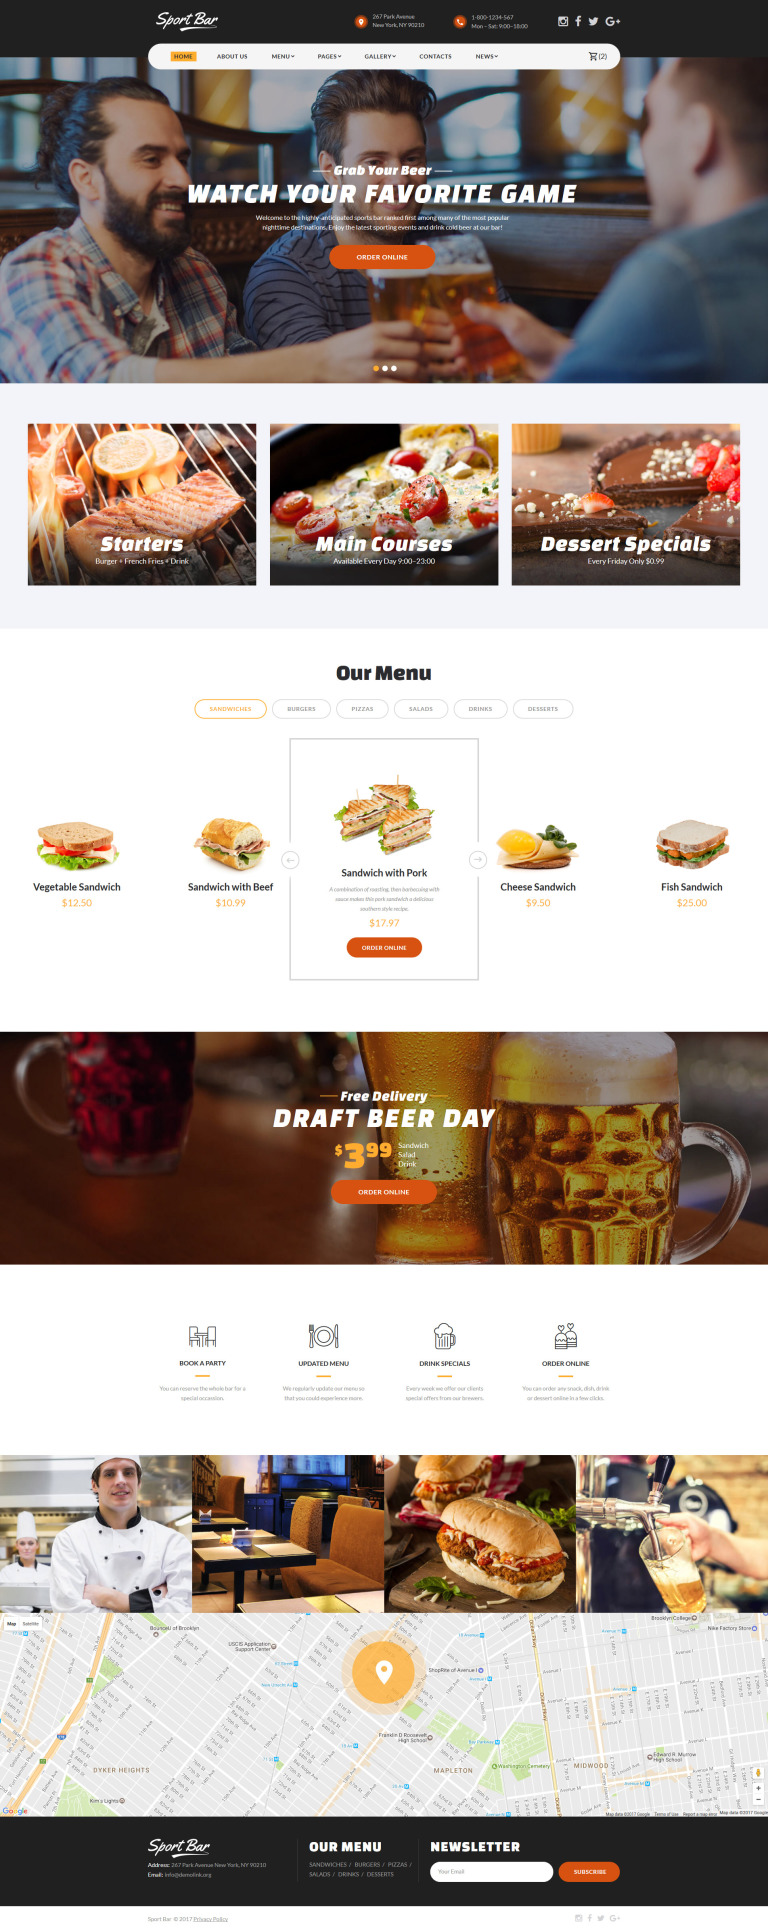 Sports Bar & Restaurant Multipage Website Template Big Screenshot